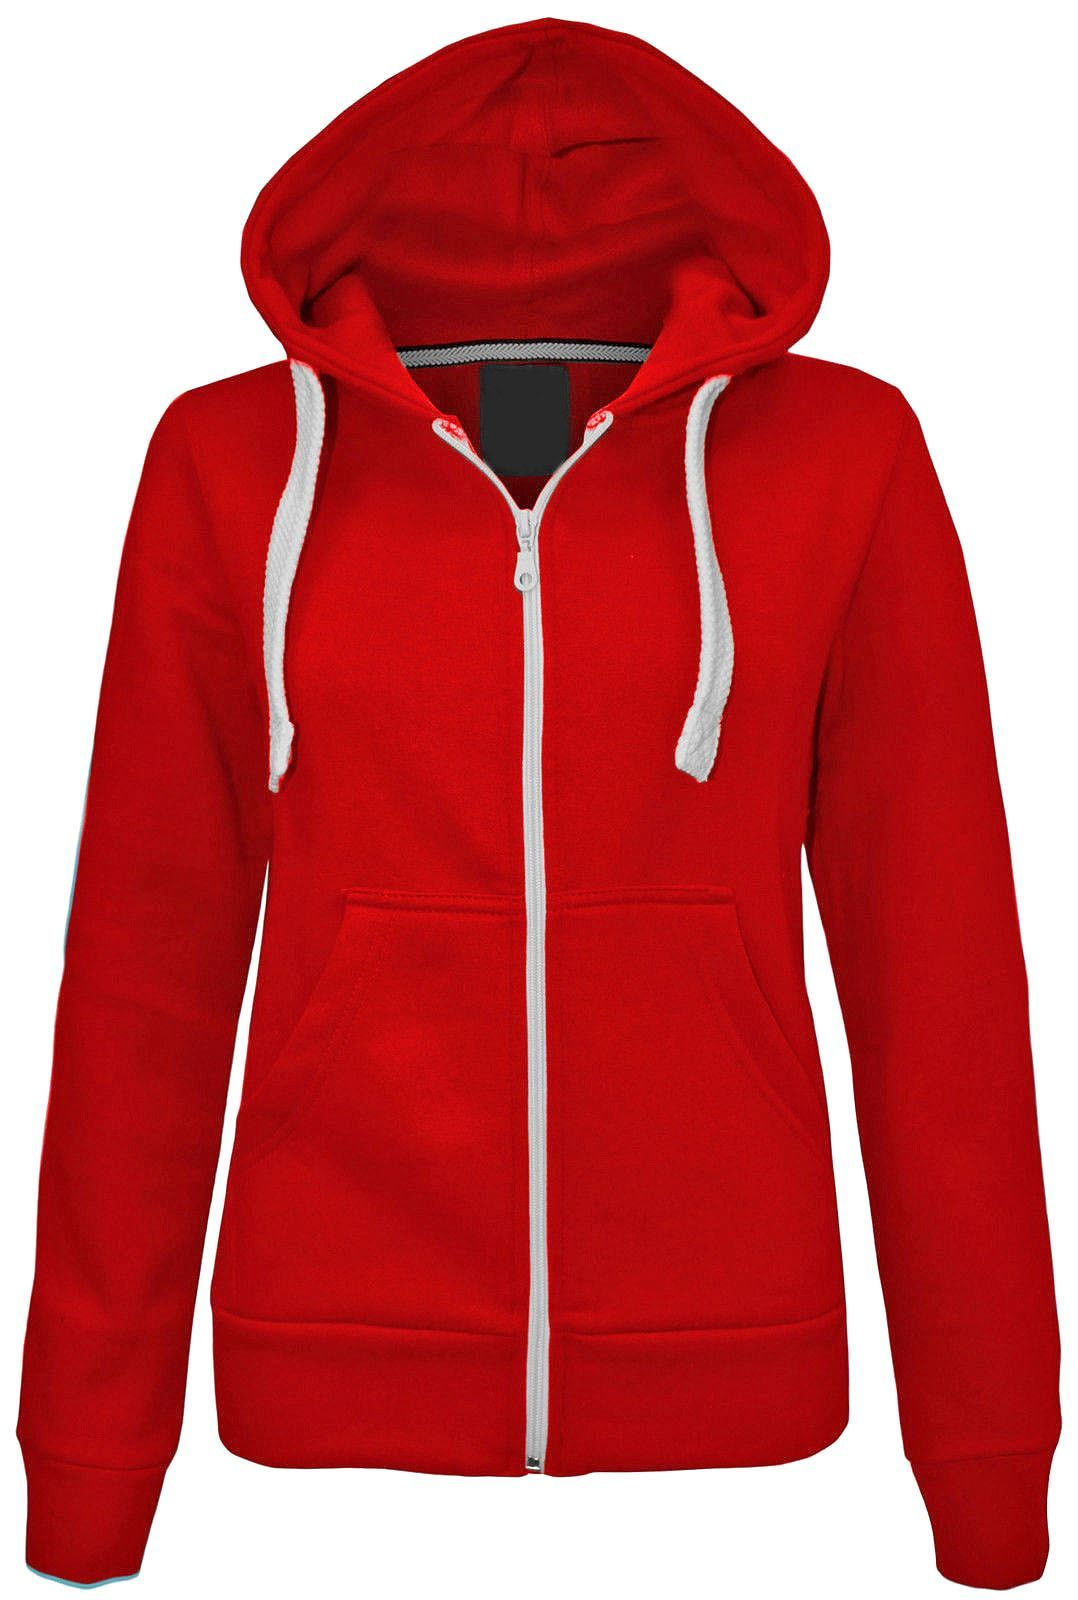 Ladies Zipper Hoody